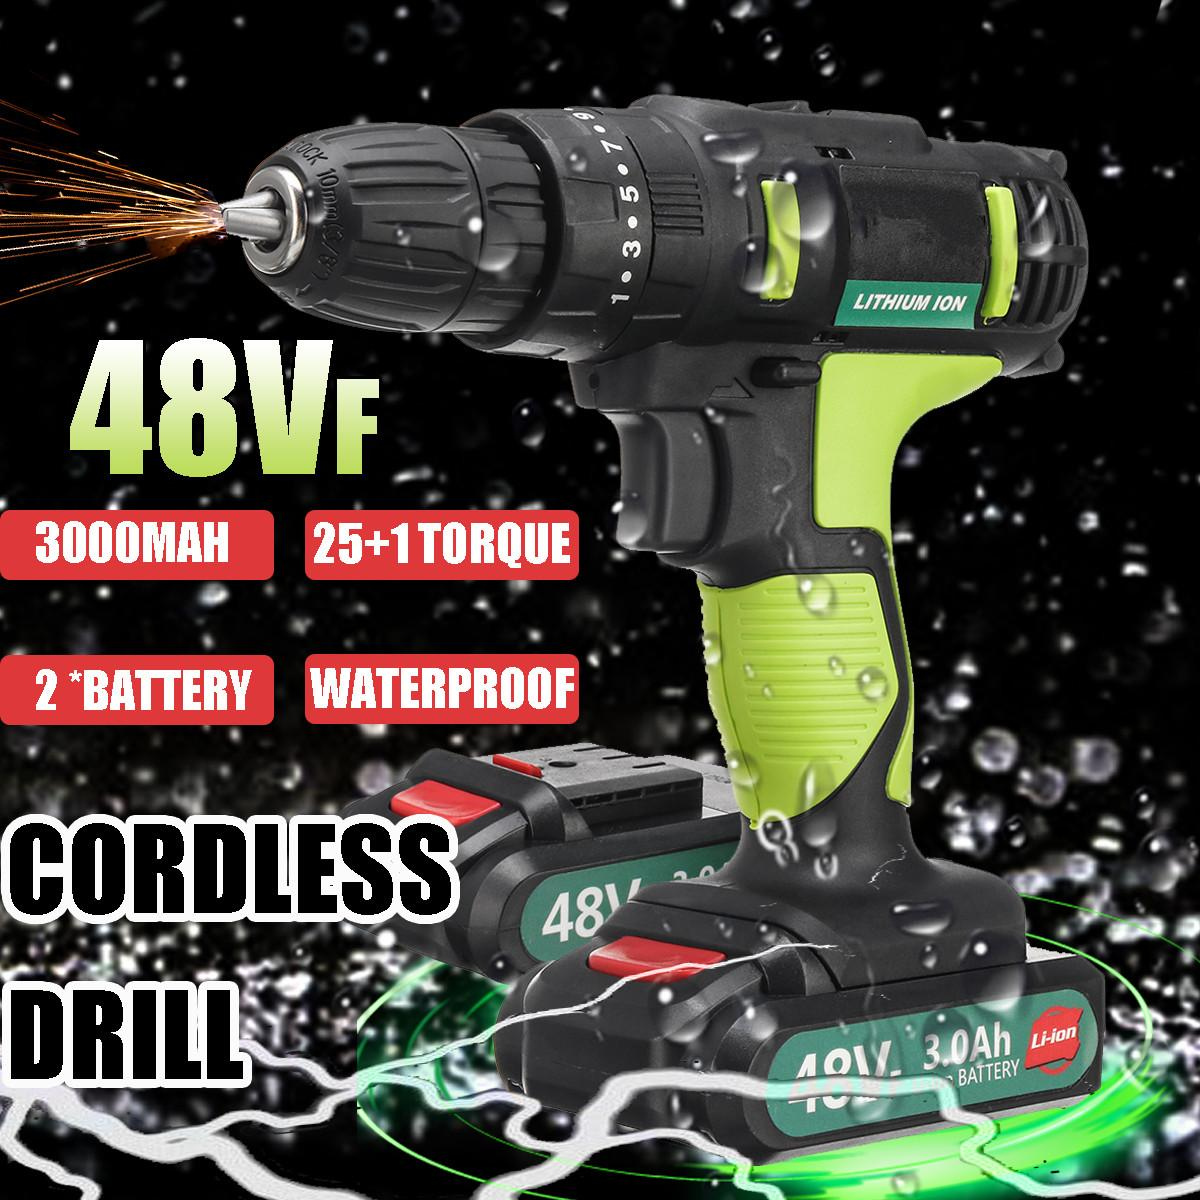 2 In 1 Electric Drill 48VF 2-Speed Cordless Waterproof Electric Screwdriver 25+1 Torque Power Tools With Rechargeable Battery